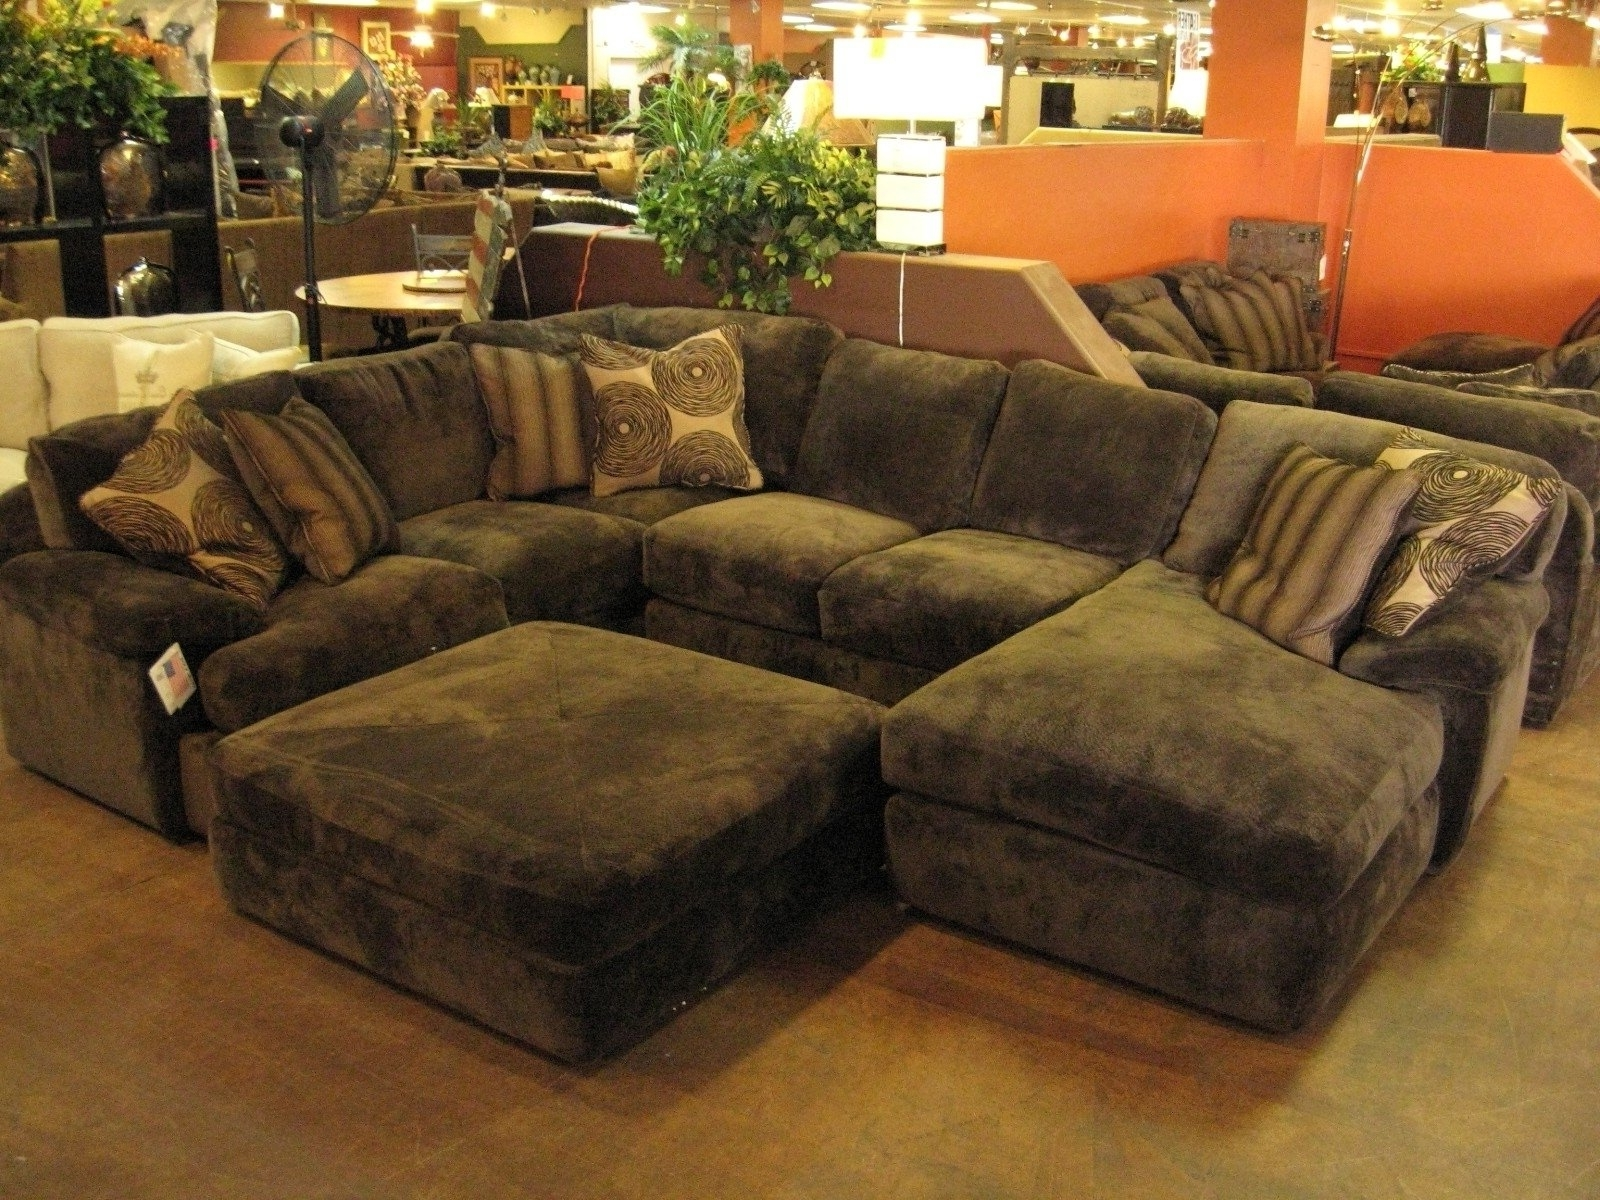 Latest Oversized Sectional Sofas Pertaining To Interior Luxury Oversized Sectional Sofa For Awesome Living Room (View 3 of 15)